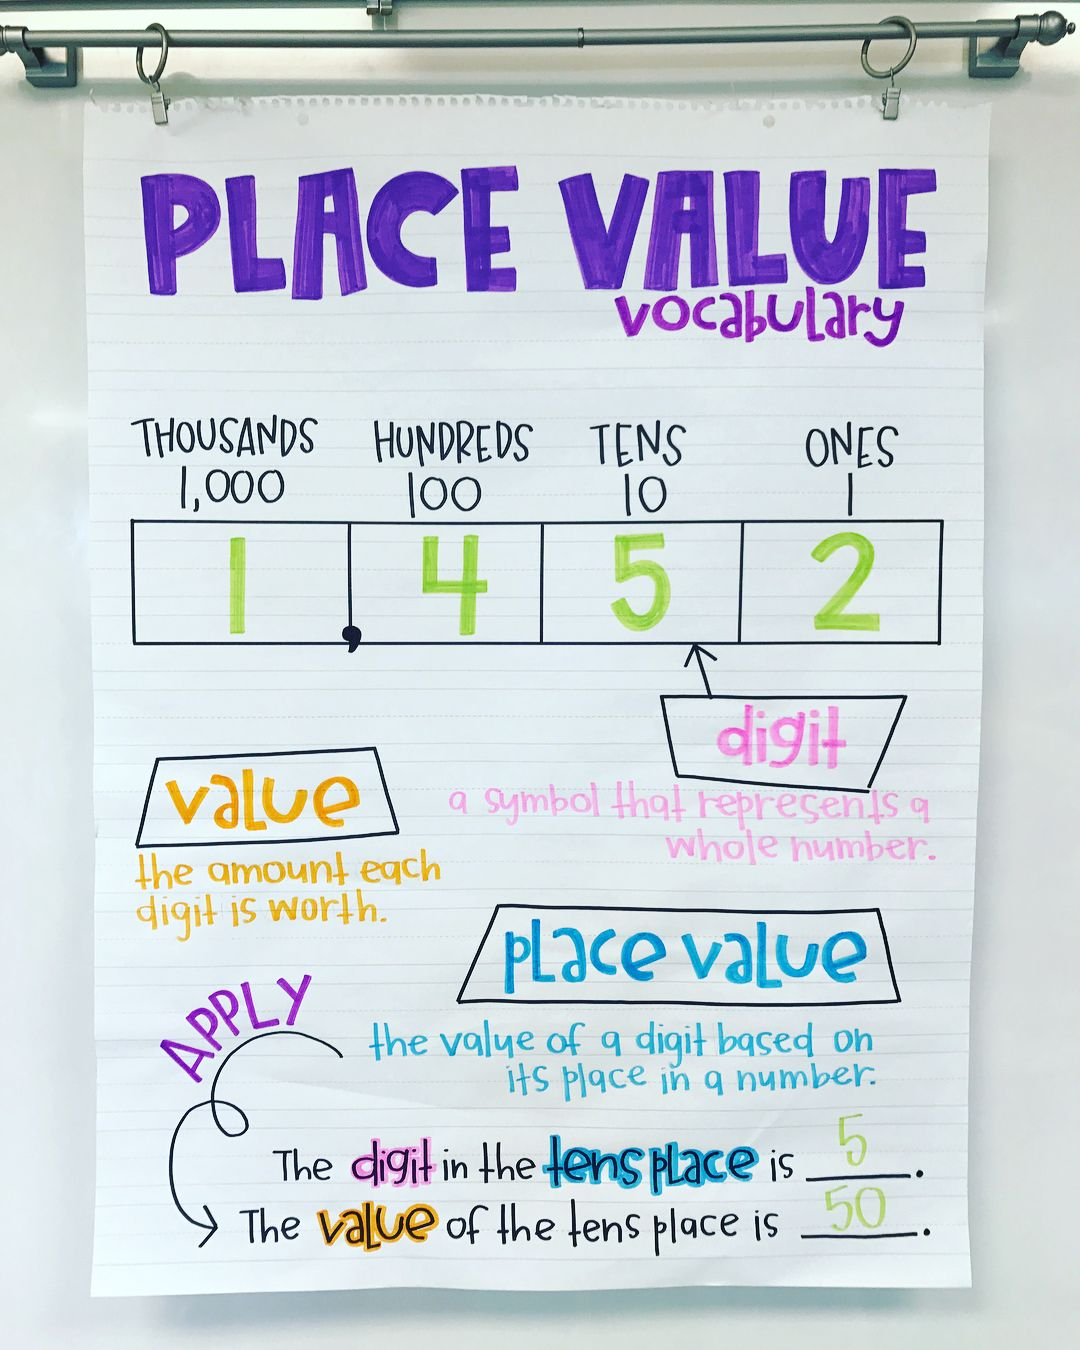 2077 likes 105 comments amy groesbeck theamygroesbeck on are you teaching place value then grab my anchor chart planogram vol its geared towards or but can be tweaked for other grades nvjuhfo Gallery